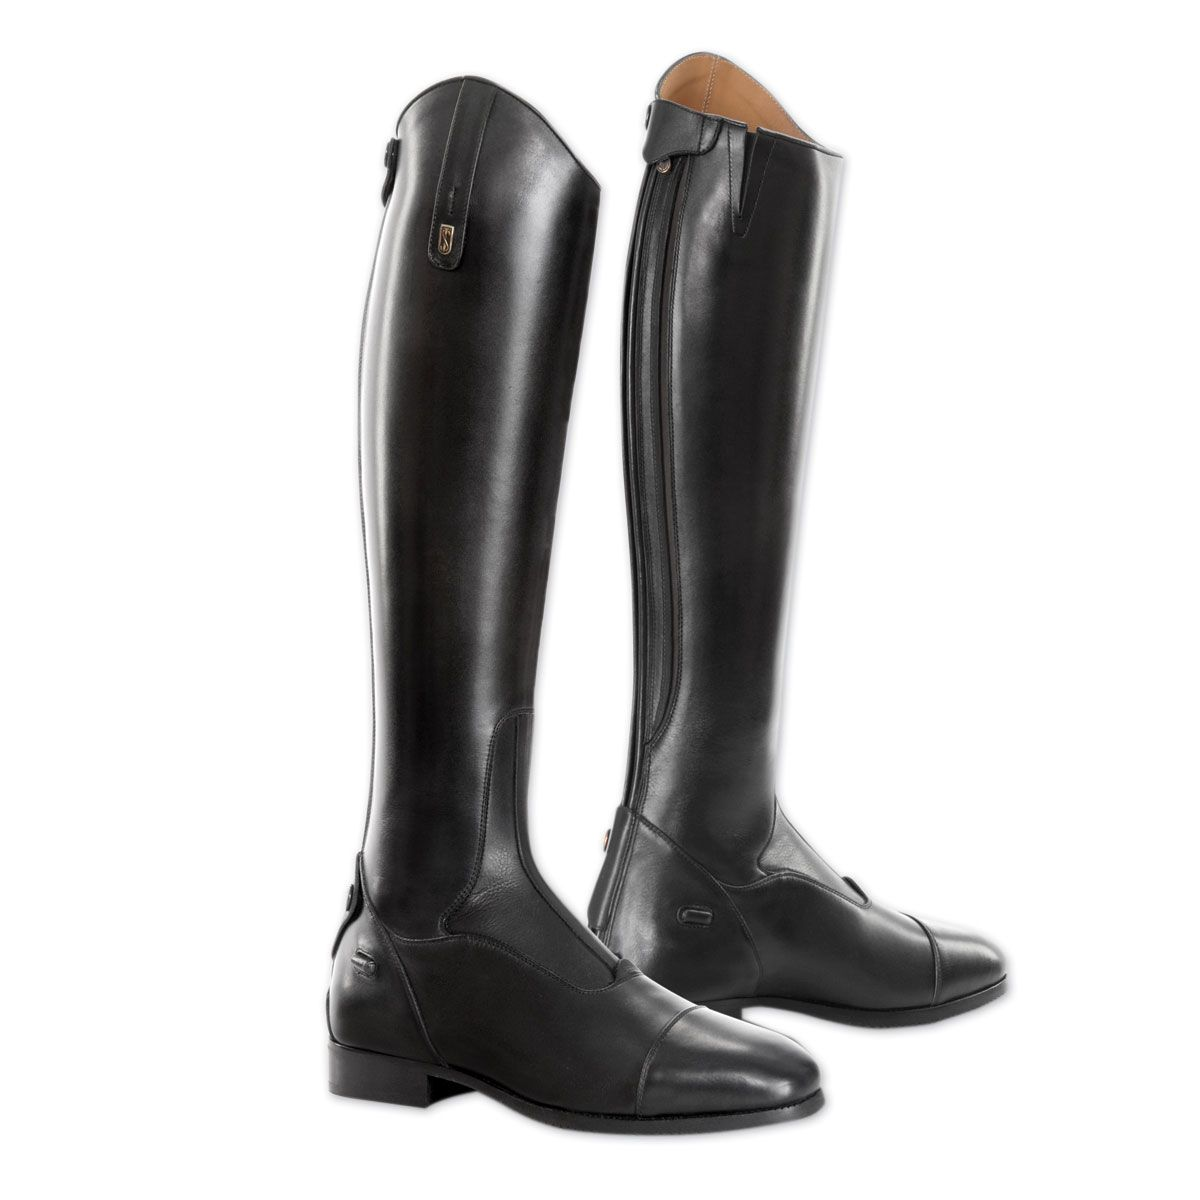 Pin It To Win It Treadstep Raphael Tall Boots From